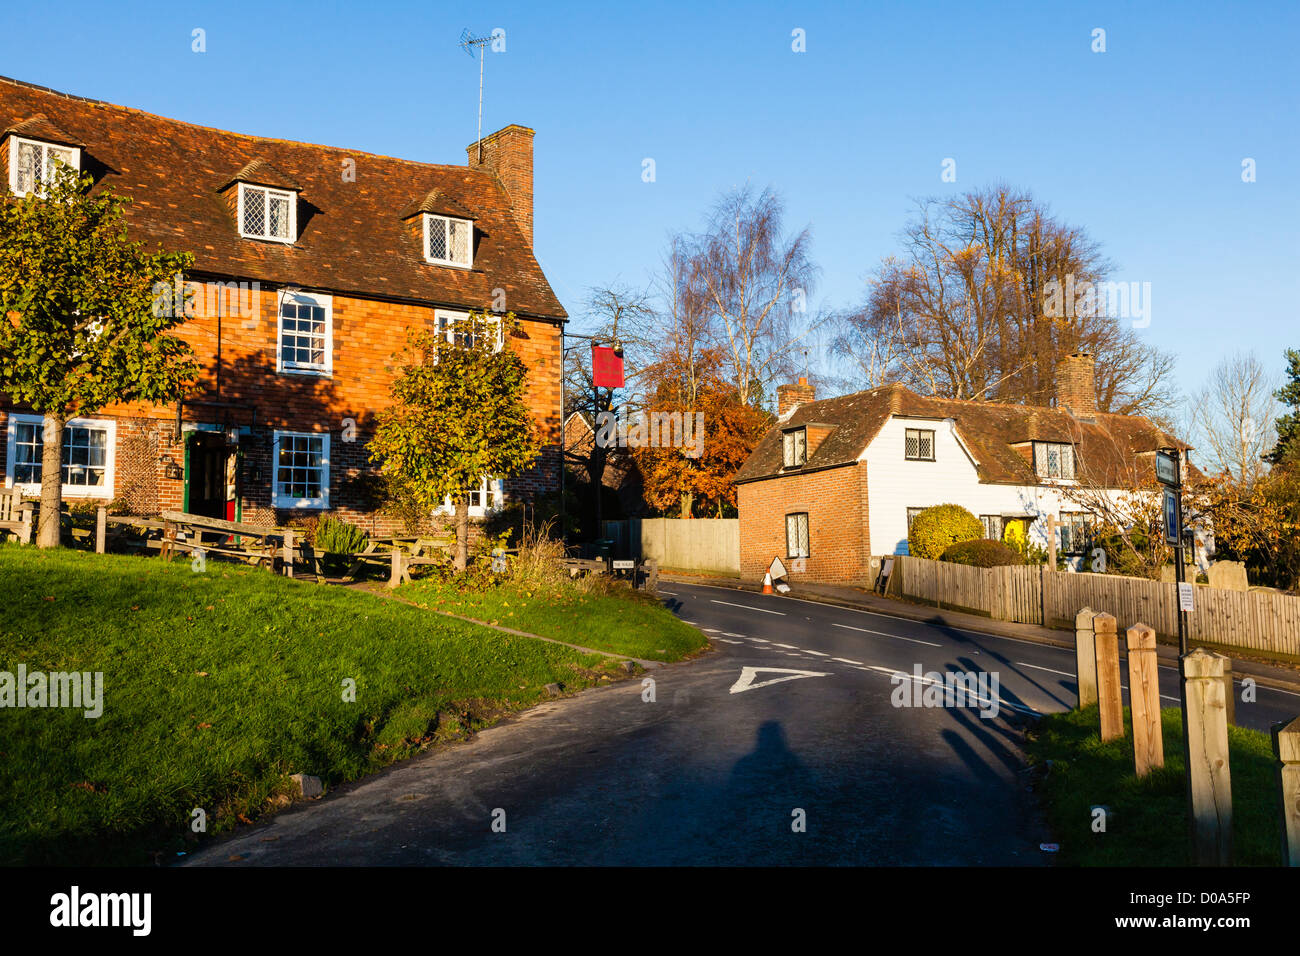 The Crown Inn, a Free House in attractive village of Groombridge on the border of East Sussex and Kent, UK Stock Photo